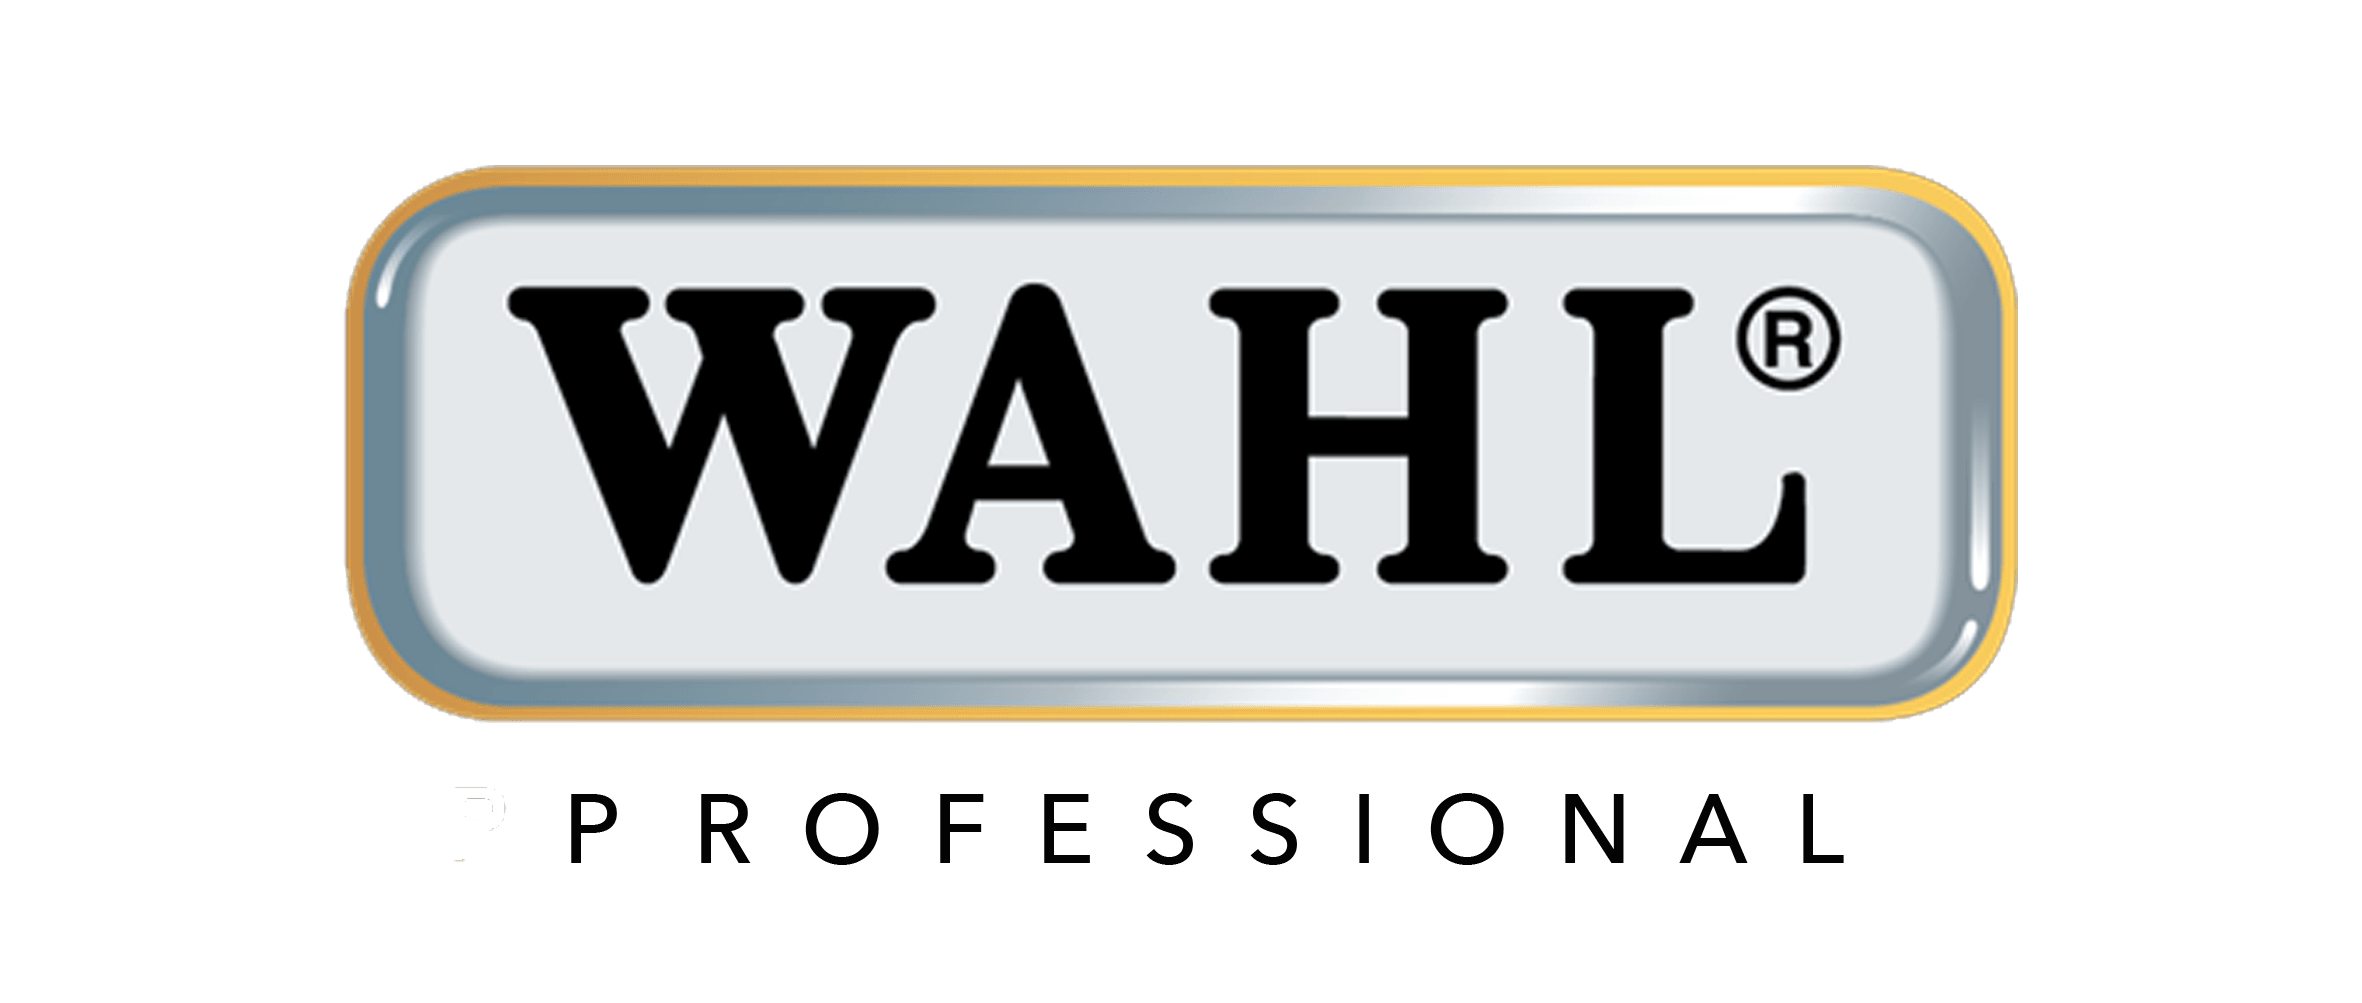 The Wahl Clipper Corporation began manufacturing electric hair clippers in 1919 in Sterling, Illinois. It is family owned with the 4th generation now at the forefront of the company. Wahl Clipper Corporation has been the leader in the professional and home grooming category for nearly a century. They employ just over 1,000 employees in Sterling.